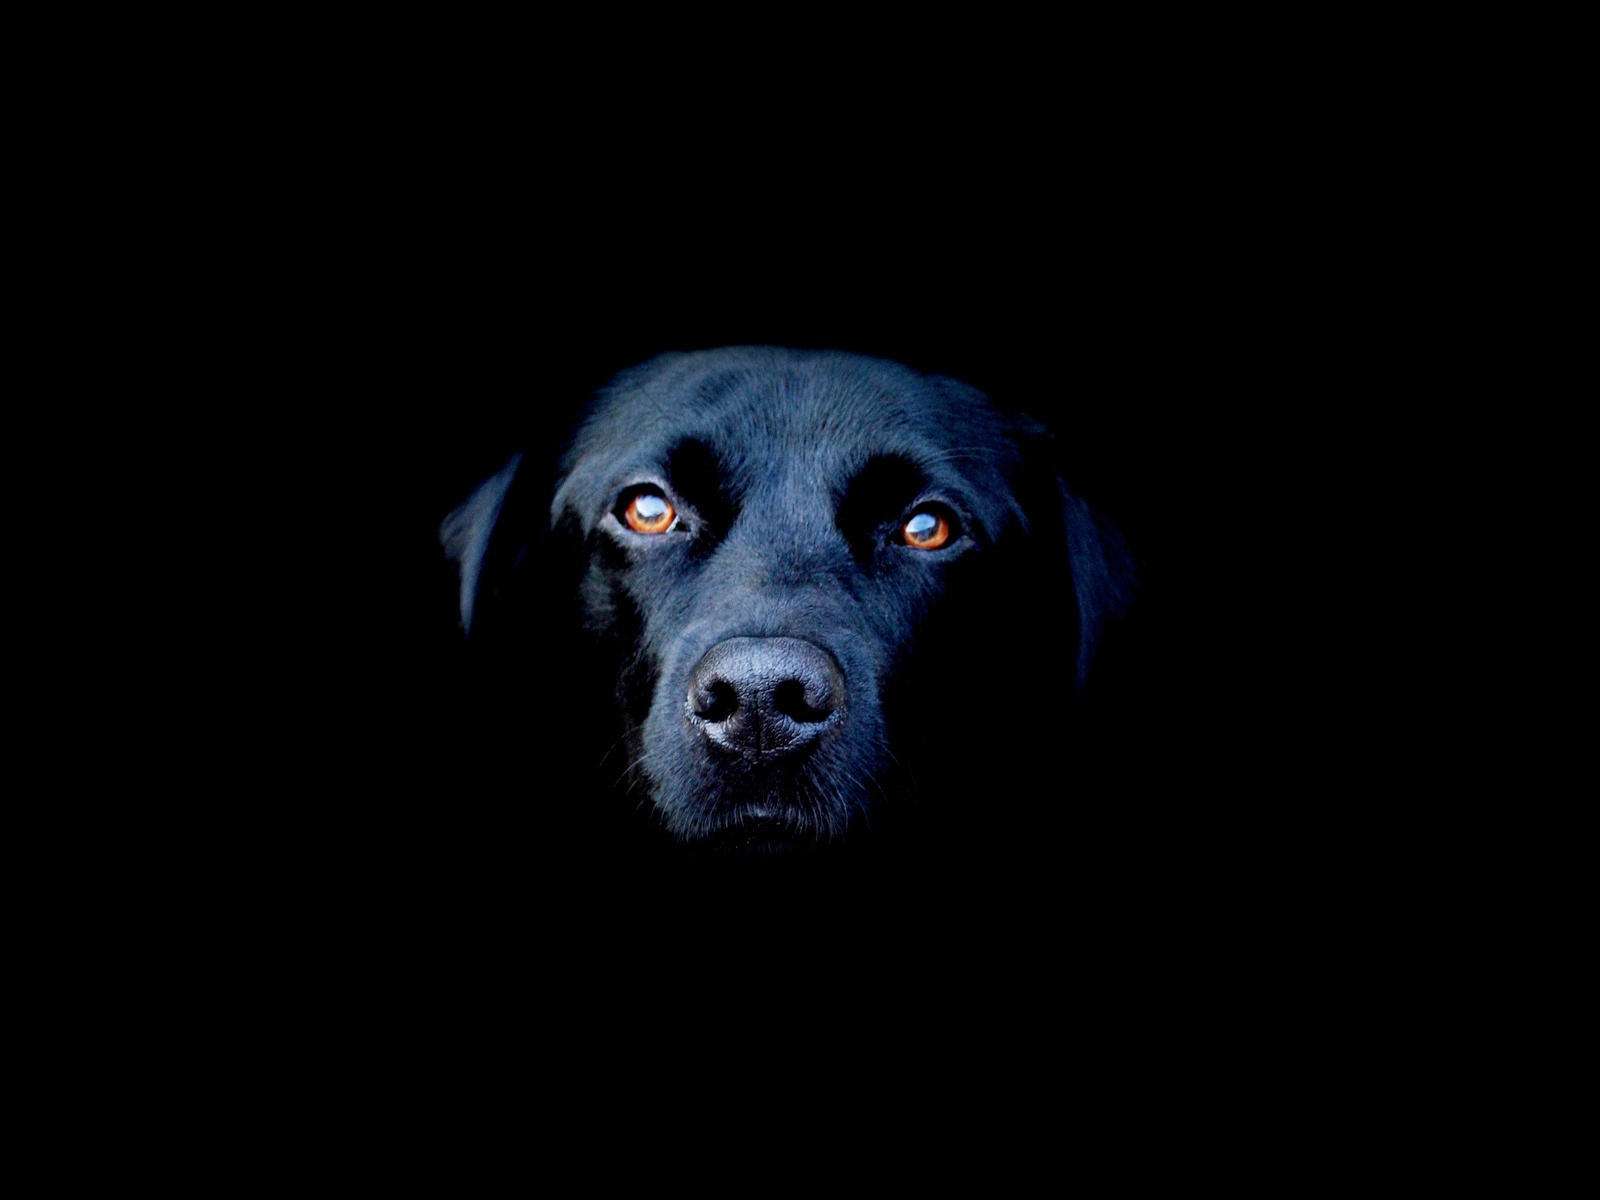 Portrait of Black Dog Face in the Dark (click to view)